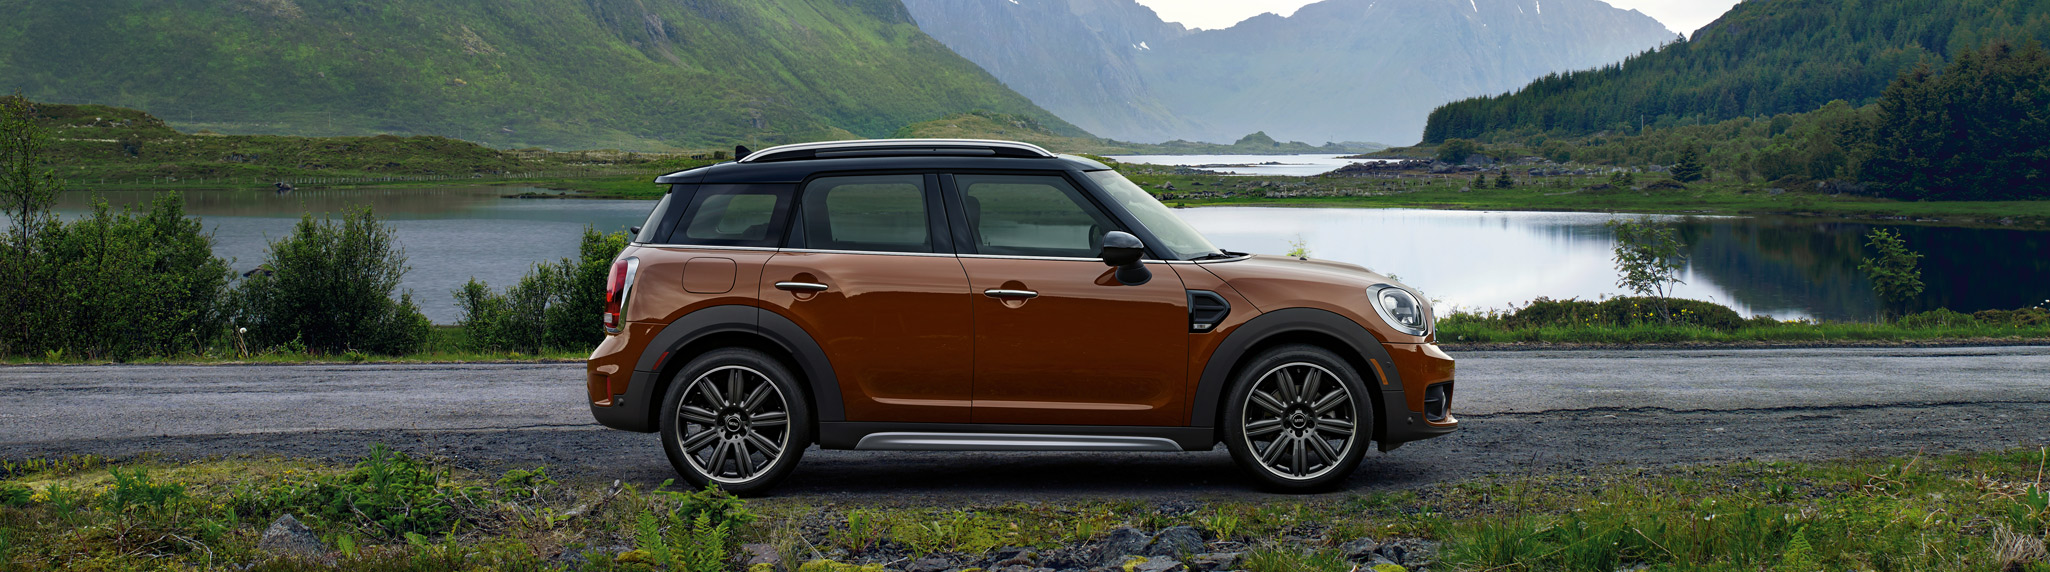 MINI Cooper Countryman Offer